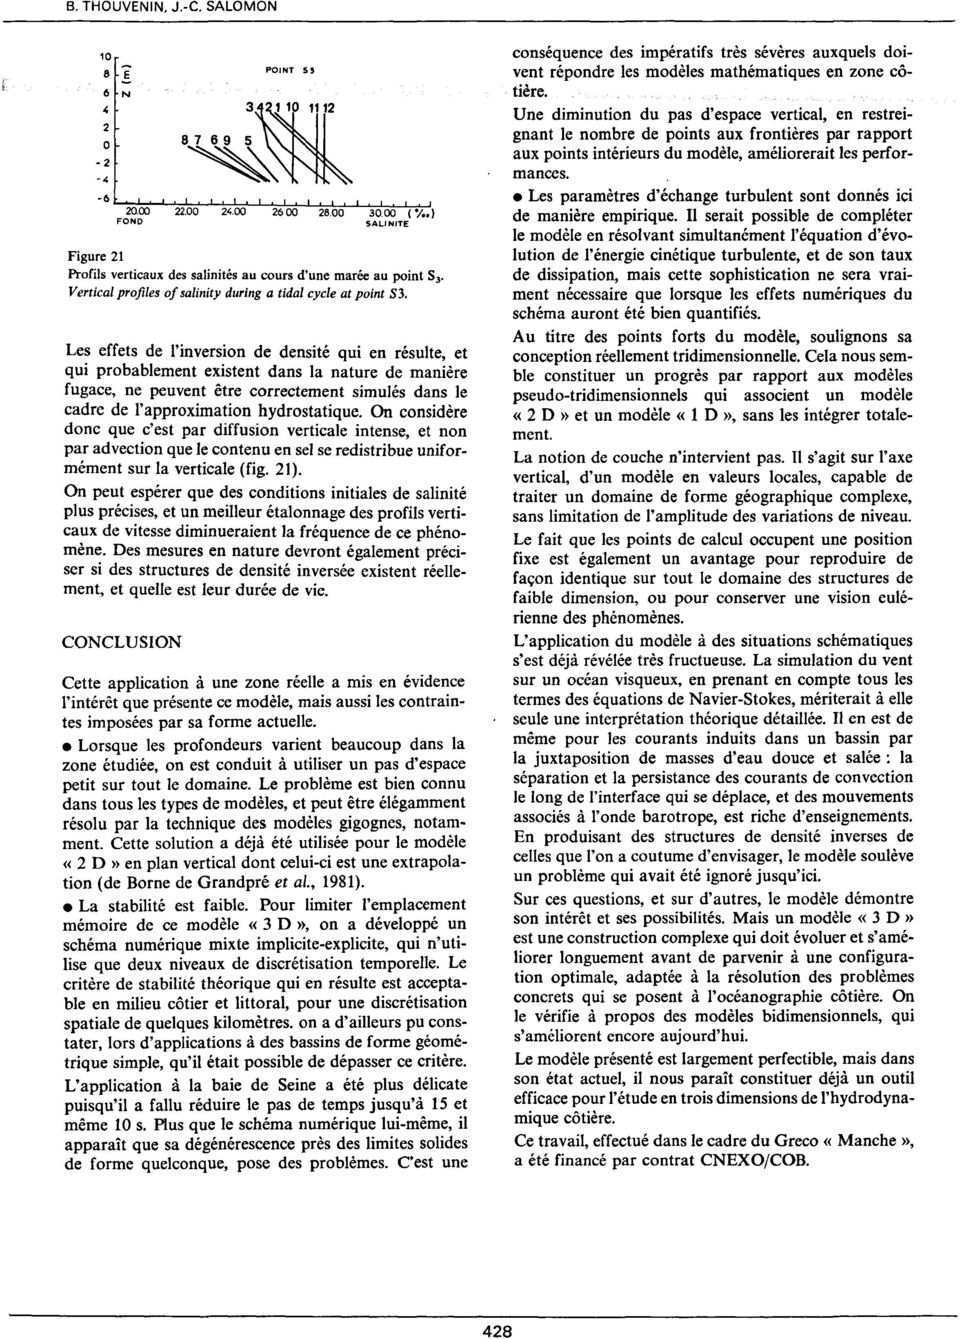 ( ; FOND SALINITE Figure 2 Profils verticaux des salinités au cours d'une marée au point S 3 Vertical profiles of salinity during a tidal cycle at point S3, Le~ effets de l'inversion de densité qui